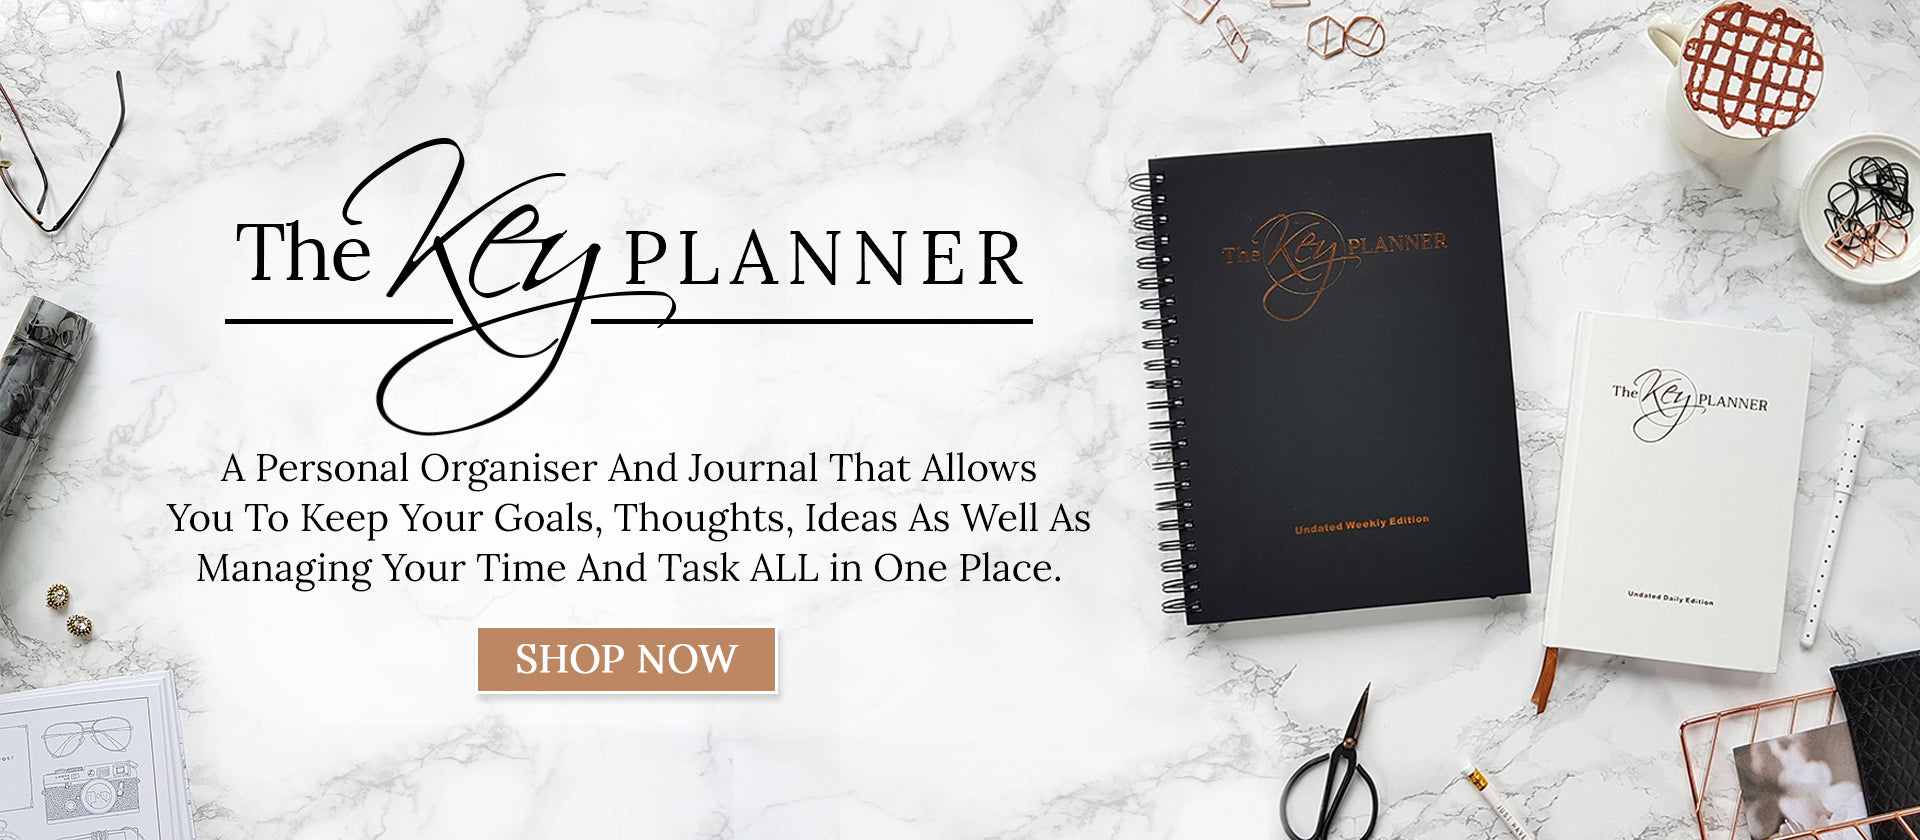 The Key Planner Digital Edition